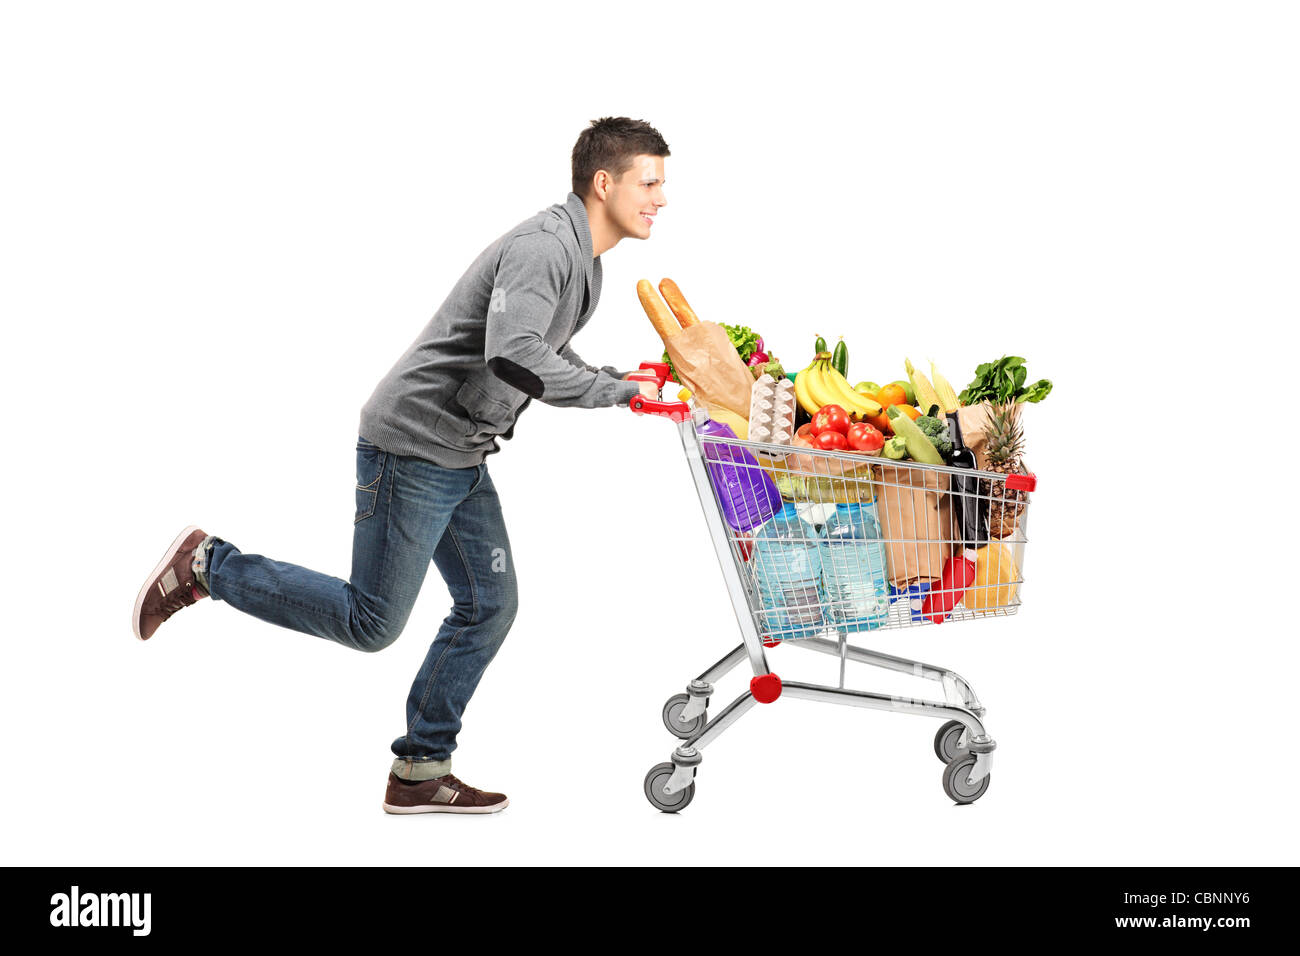 Young Man Running And Pushing A Shopping Cart Full With